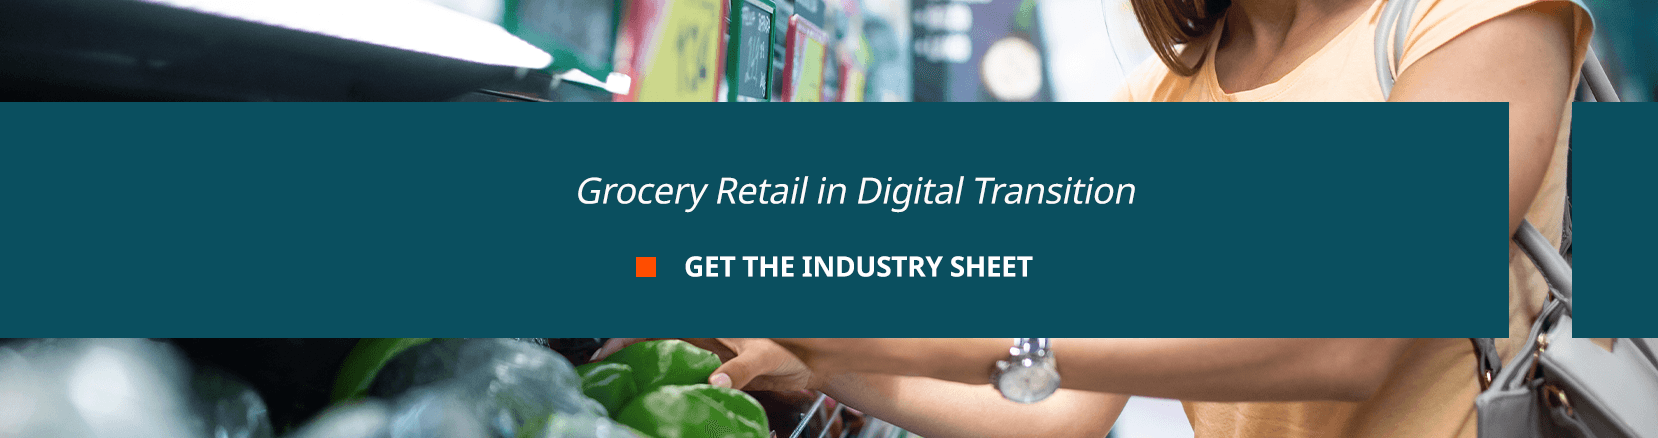 Grocery Retail in Digital Transition